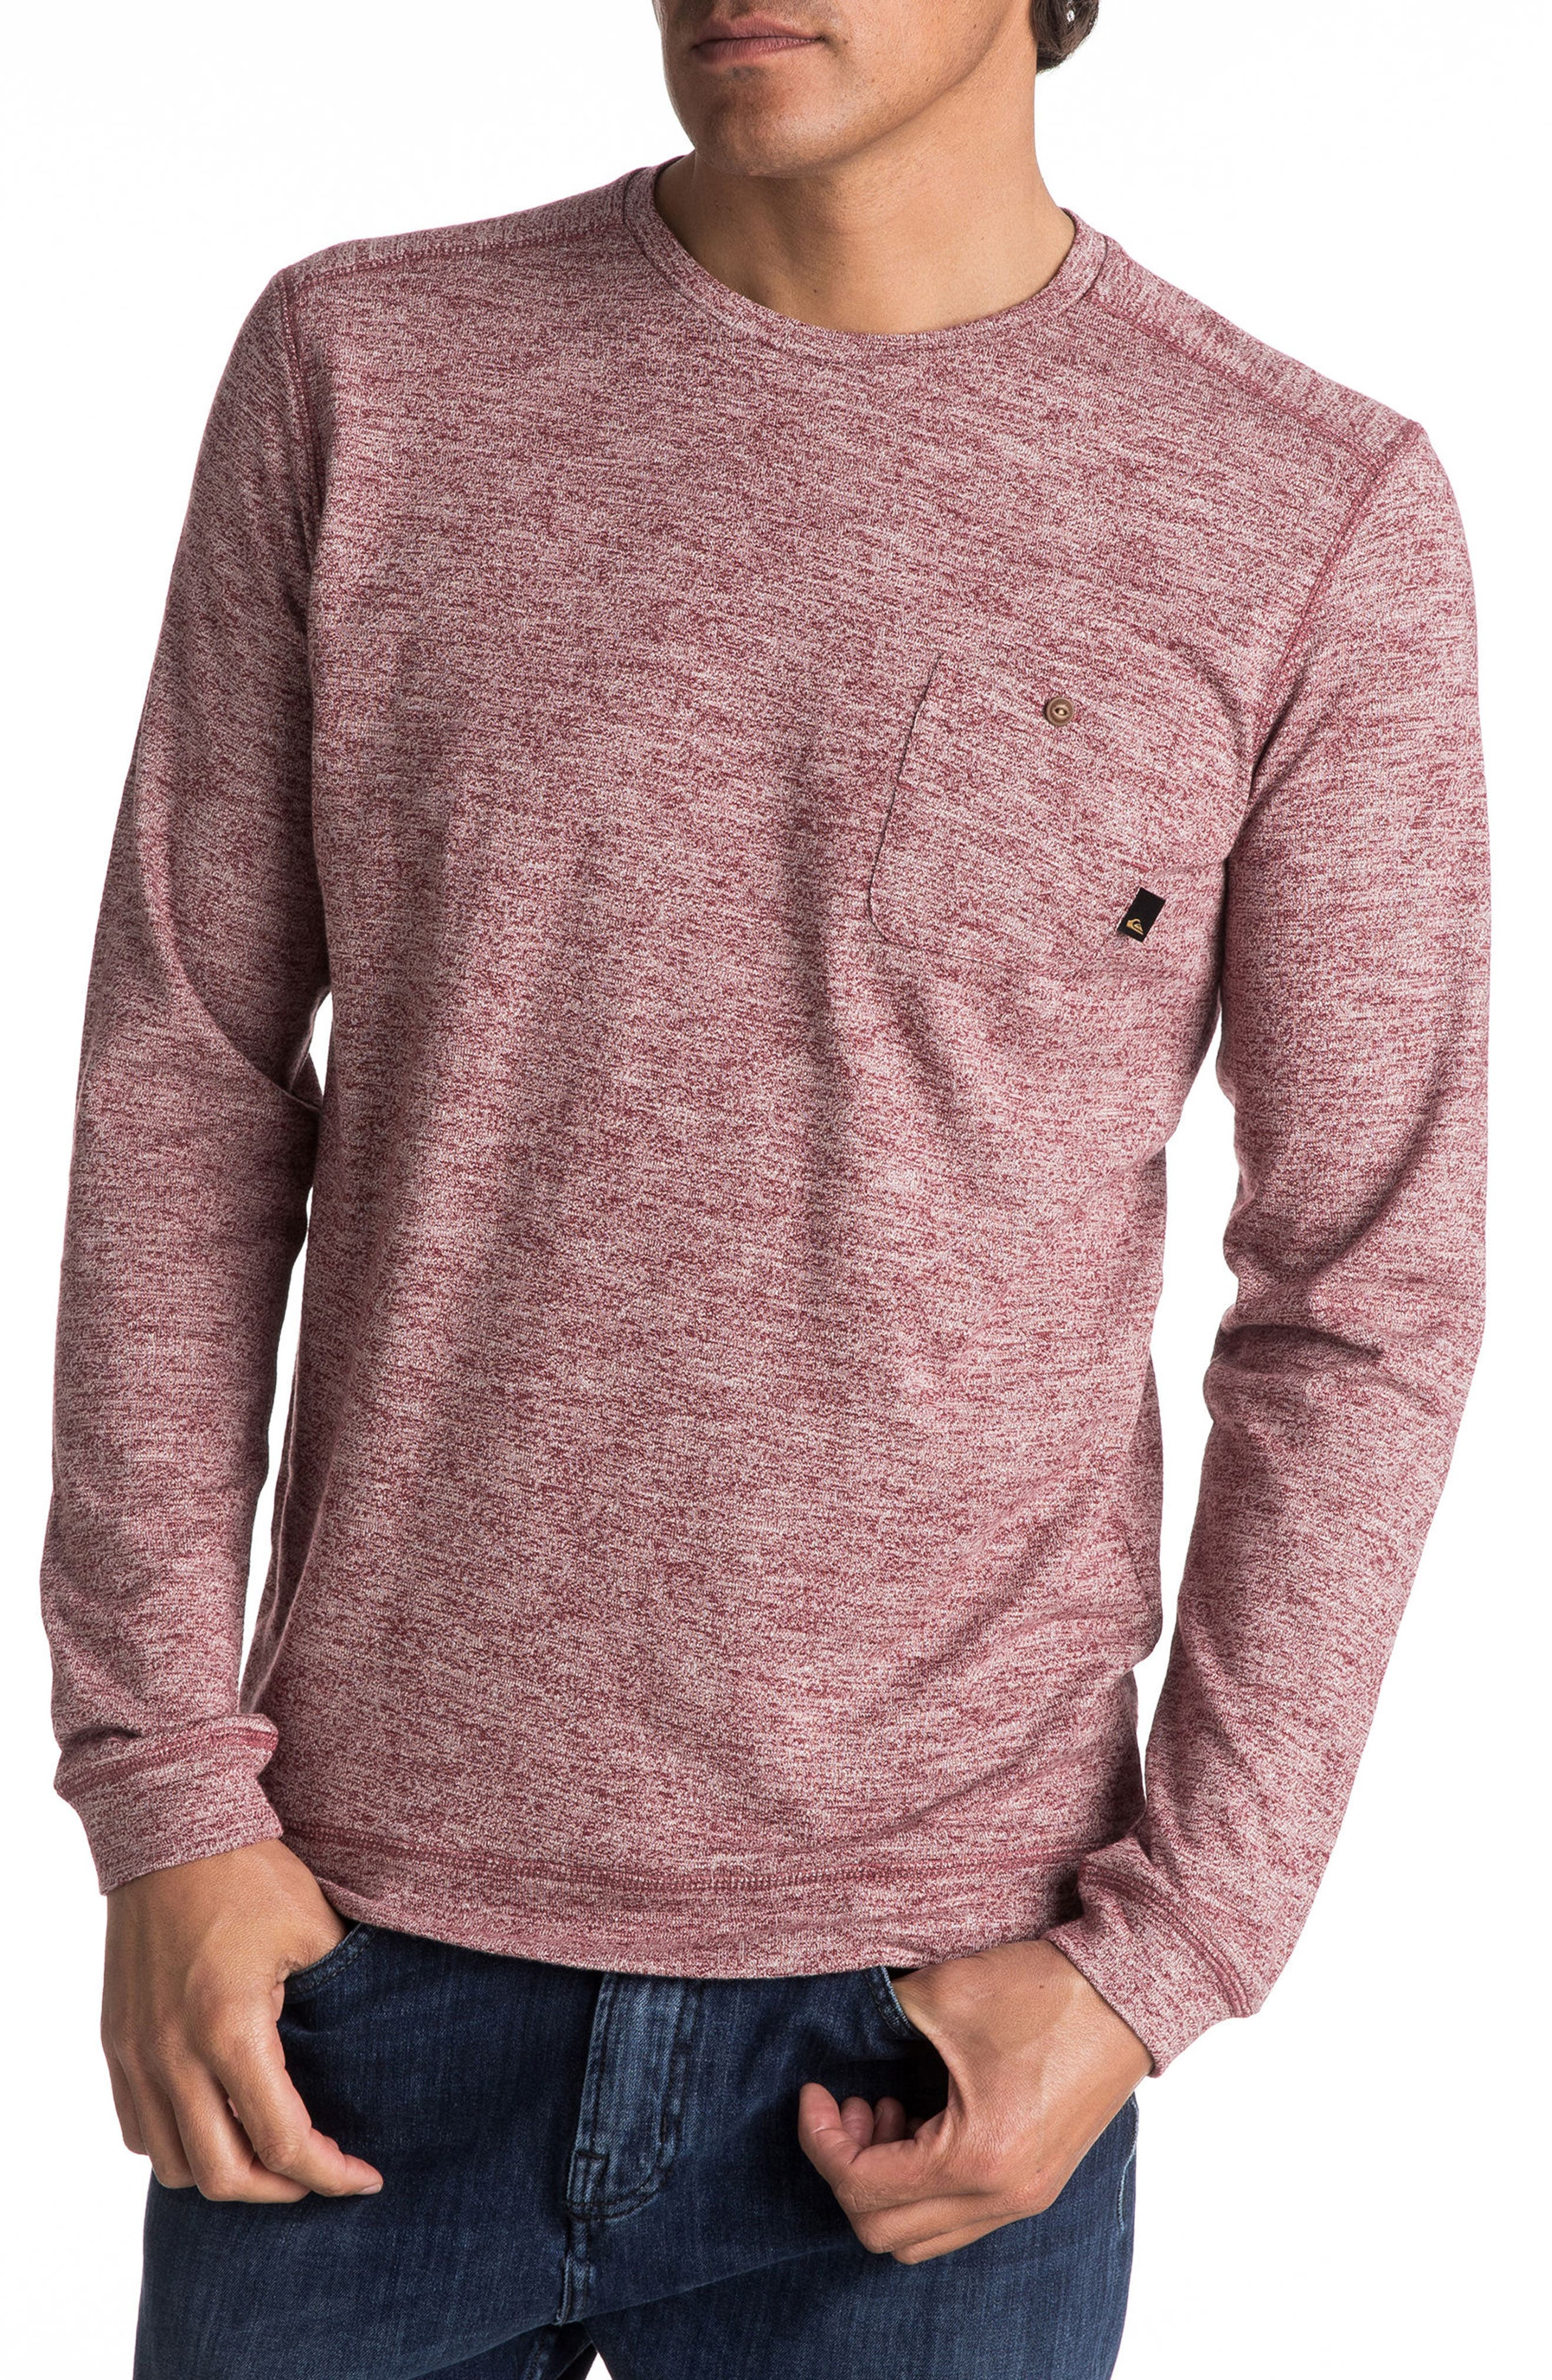 Lindow Marled Sweater,                         Main,                         color, Pomegranate Heather